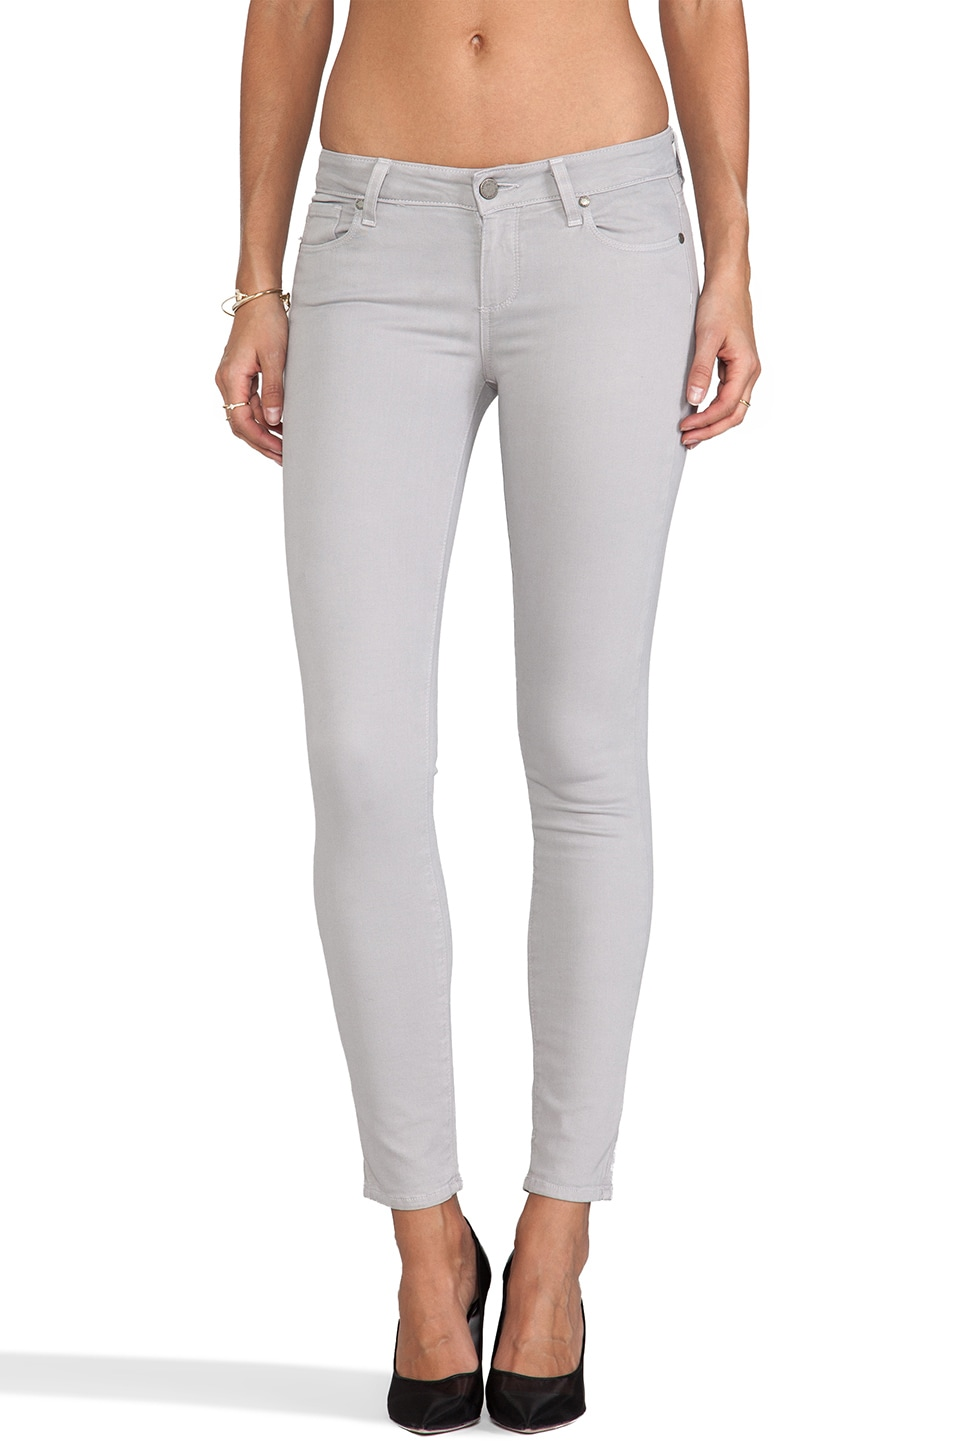 Paige Denim Verdugo Ankle in Metal